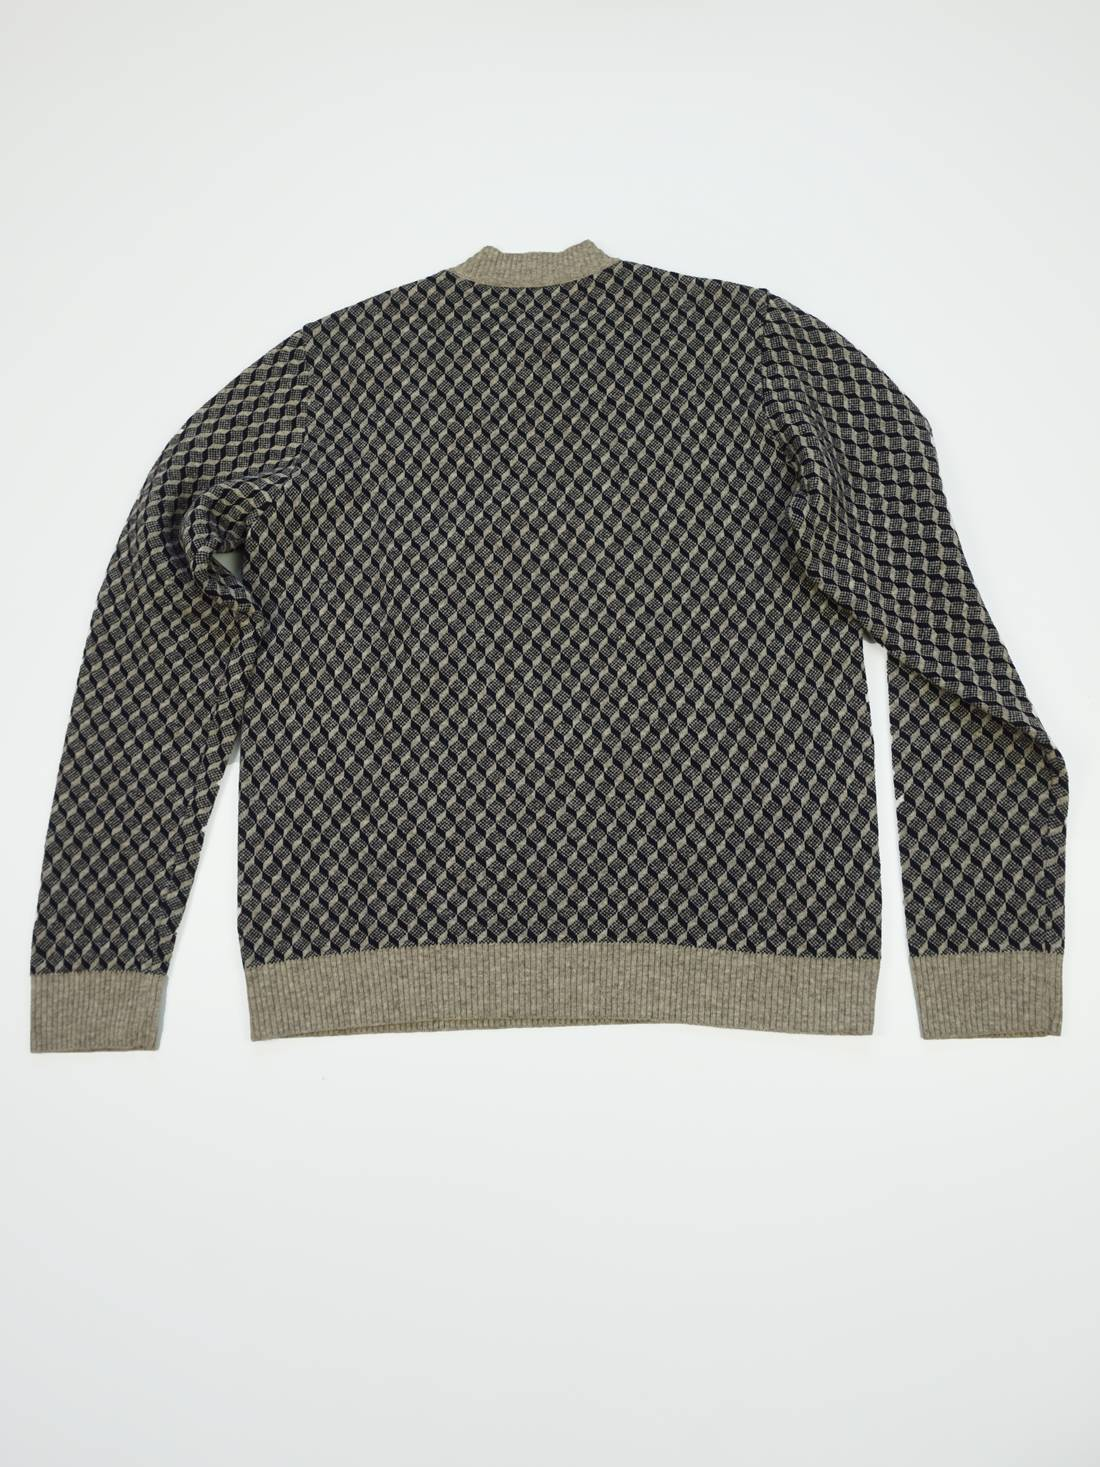 Undercover X-Rayed Cat Wool Knit Size m - Sweaters & Knitwear for ...